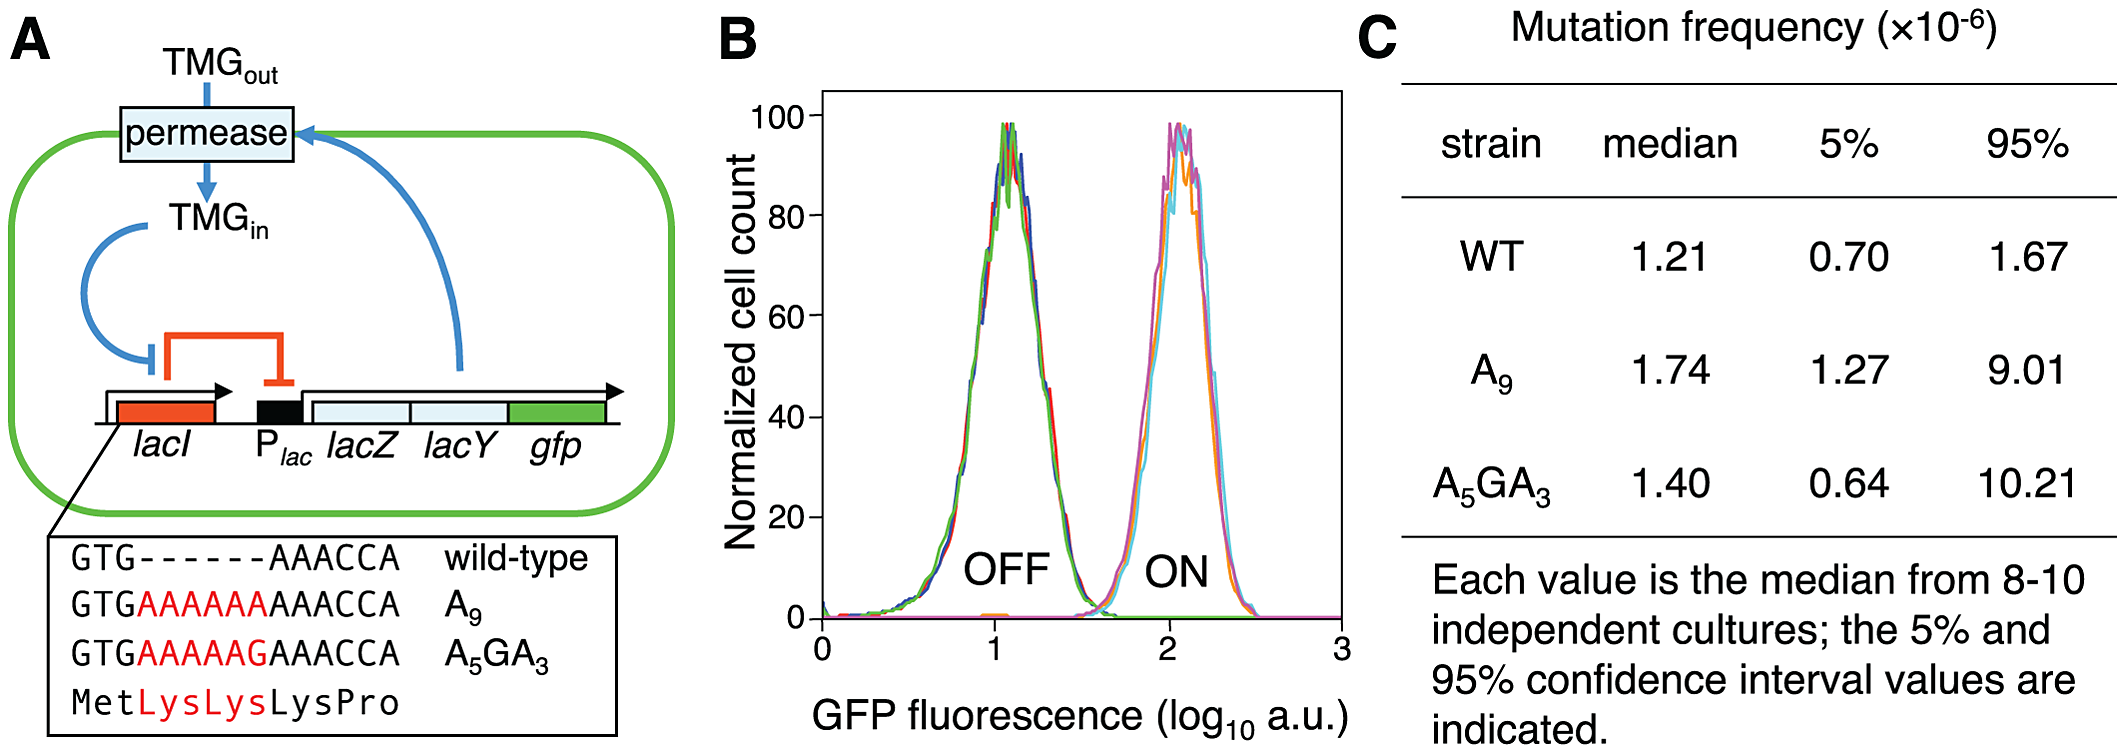 Novel system to study the consequences of error-prone transcription sequences.